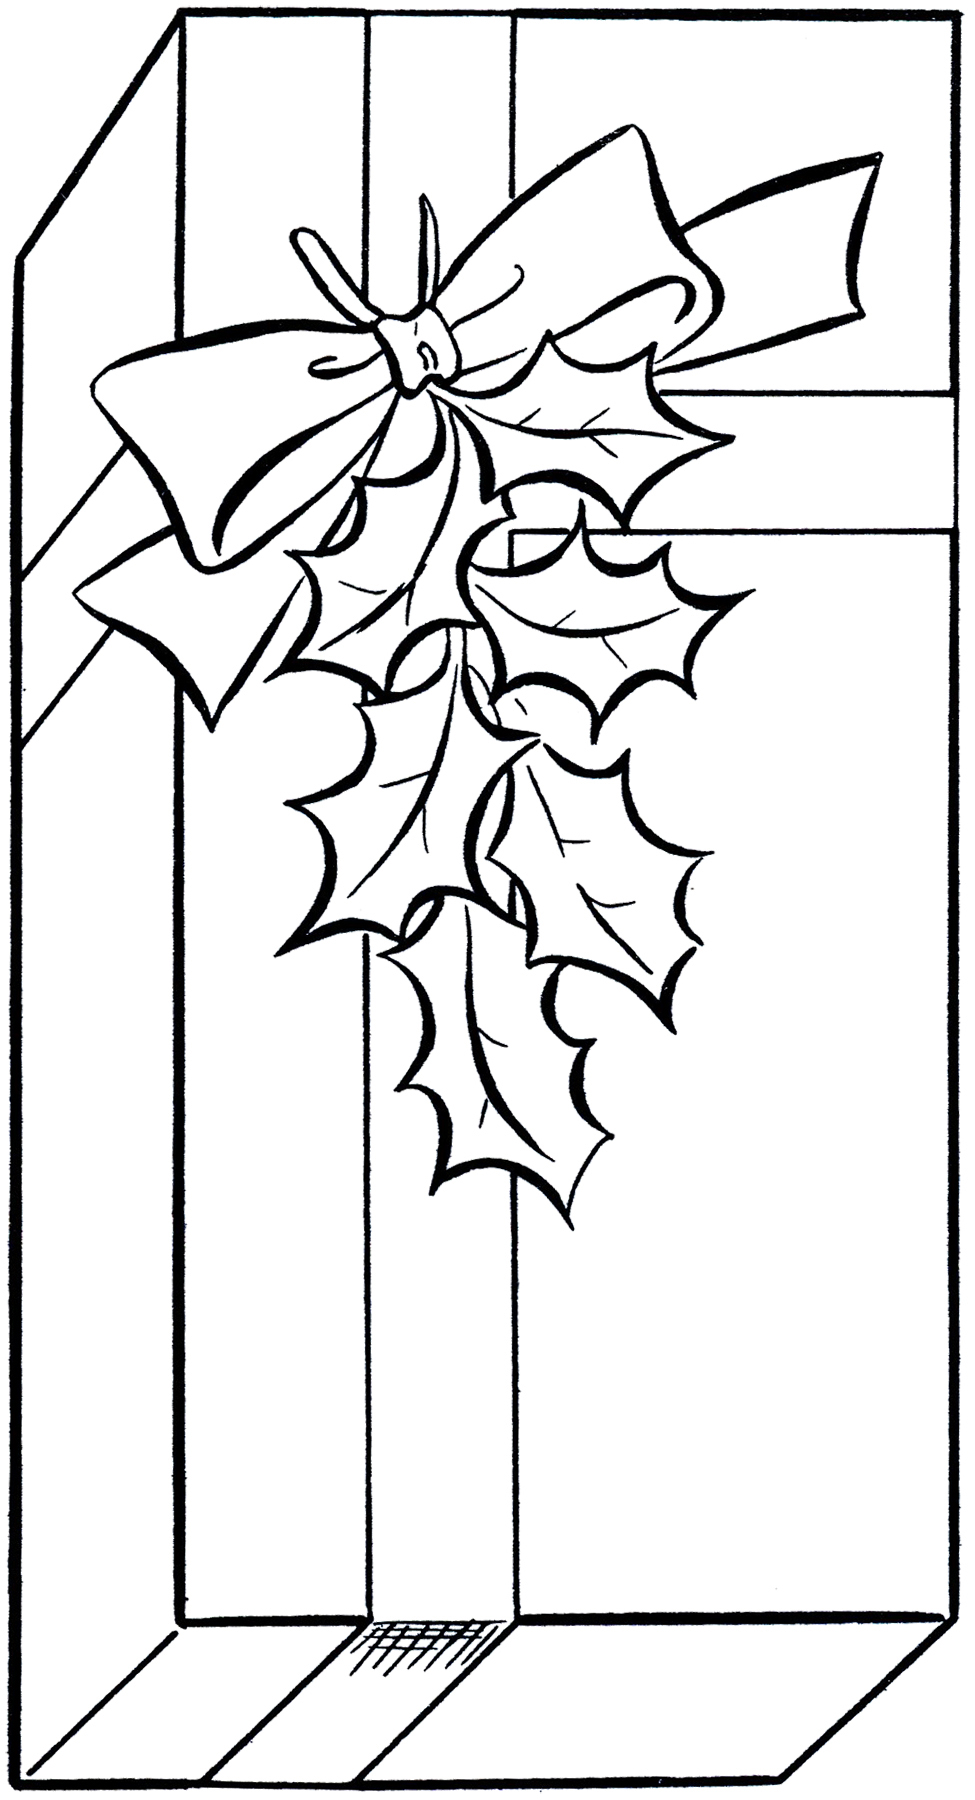 Holiday Gift Clip Art Image - Coloring Page! - The ...